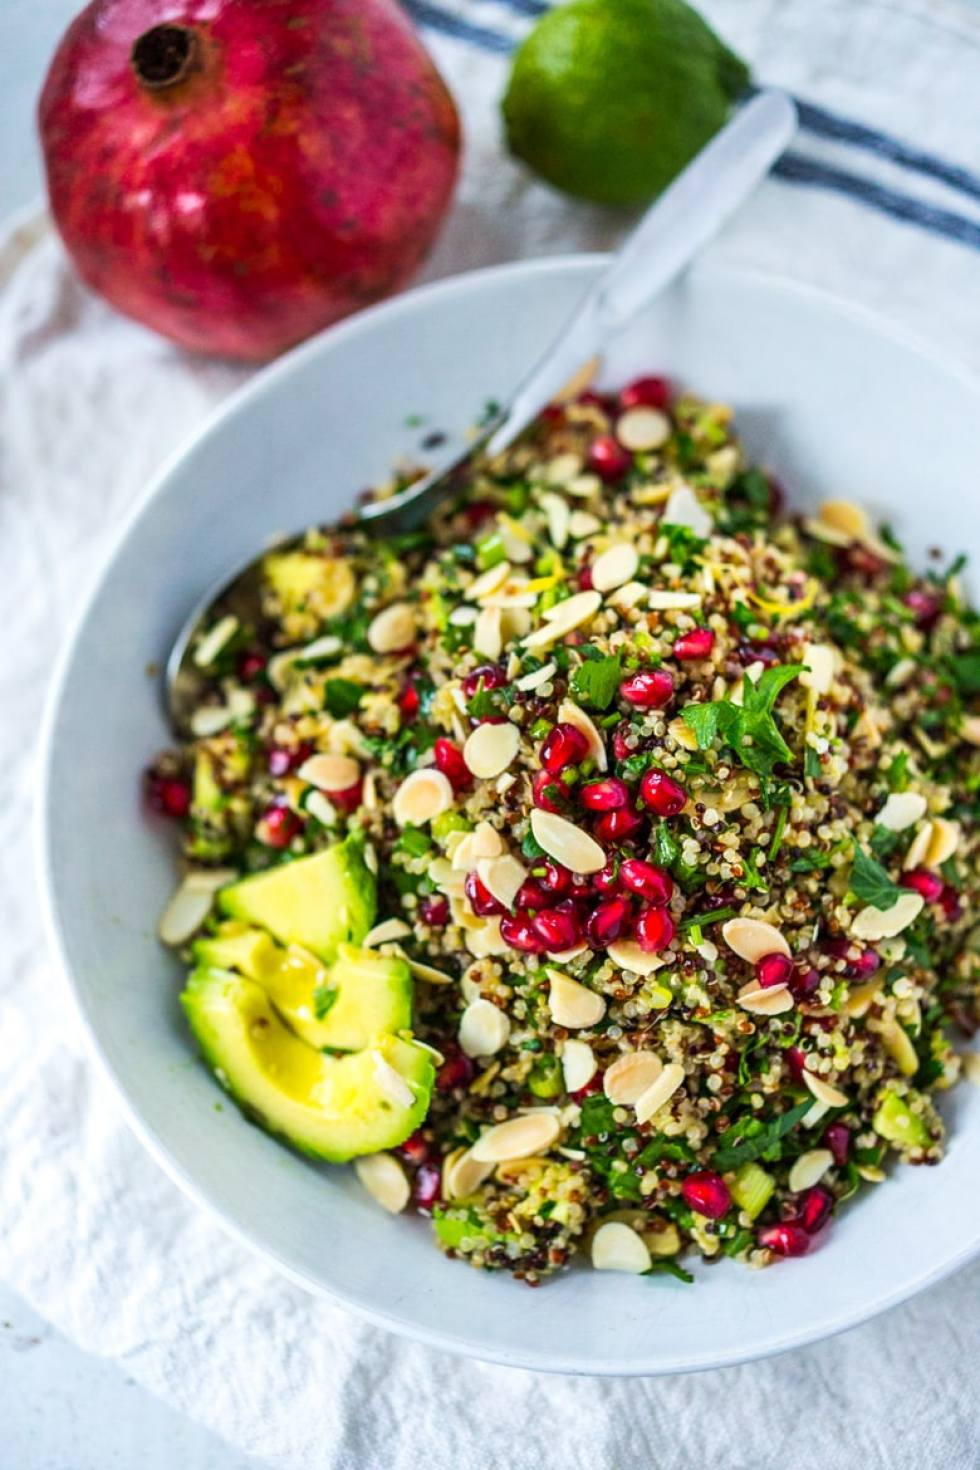 EAT CLEAN with these 20 simple Plant-Based Meals!!!   QUINOA Crunch Salad with almonds, pomegranate, a cleasning vegan and gluten free salad, high in anti-oxcidents and protein!   www.feastingathome.com